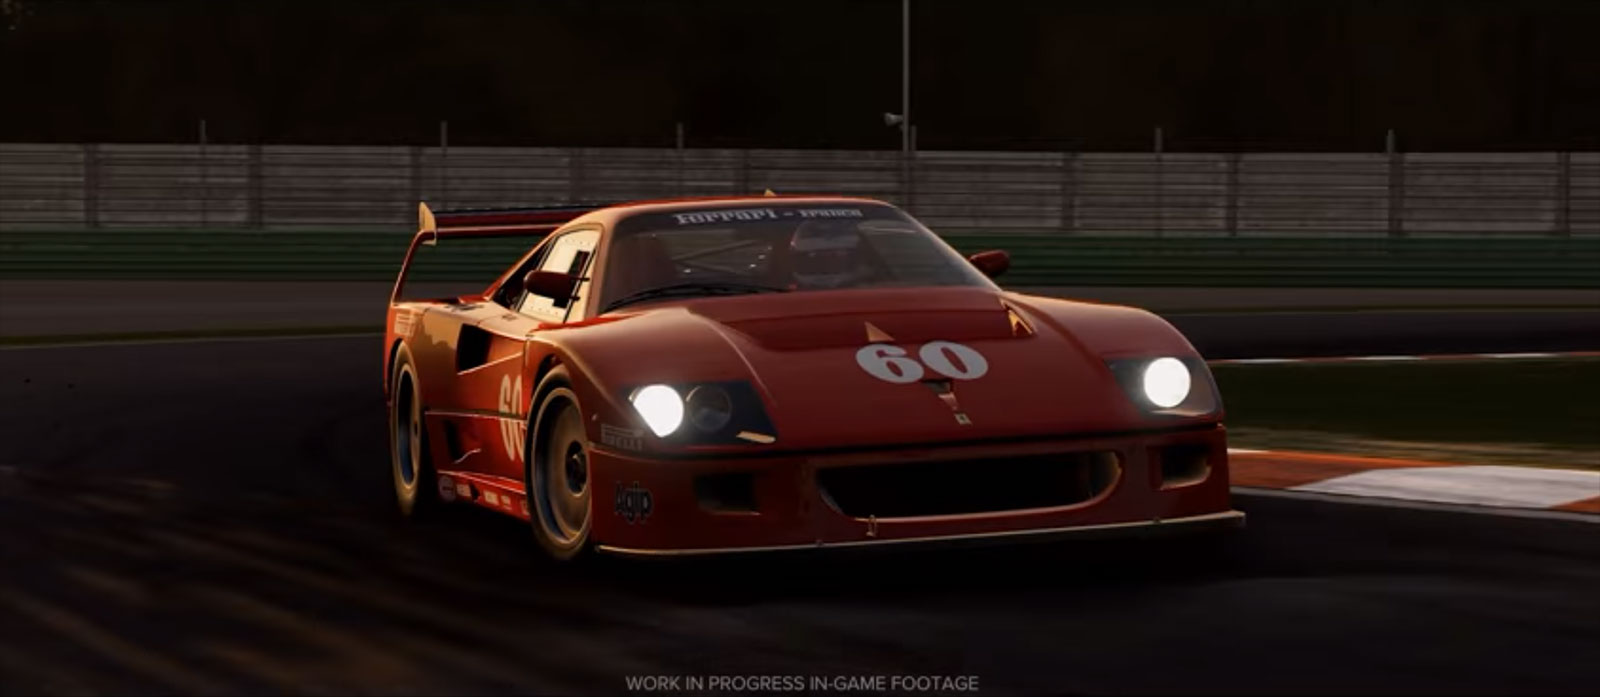 Photo of Project Cars 2 'nin yeni trailer'ı yayınlandı